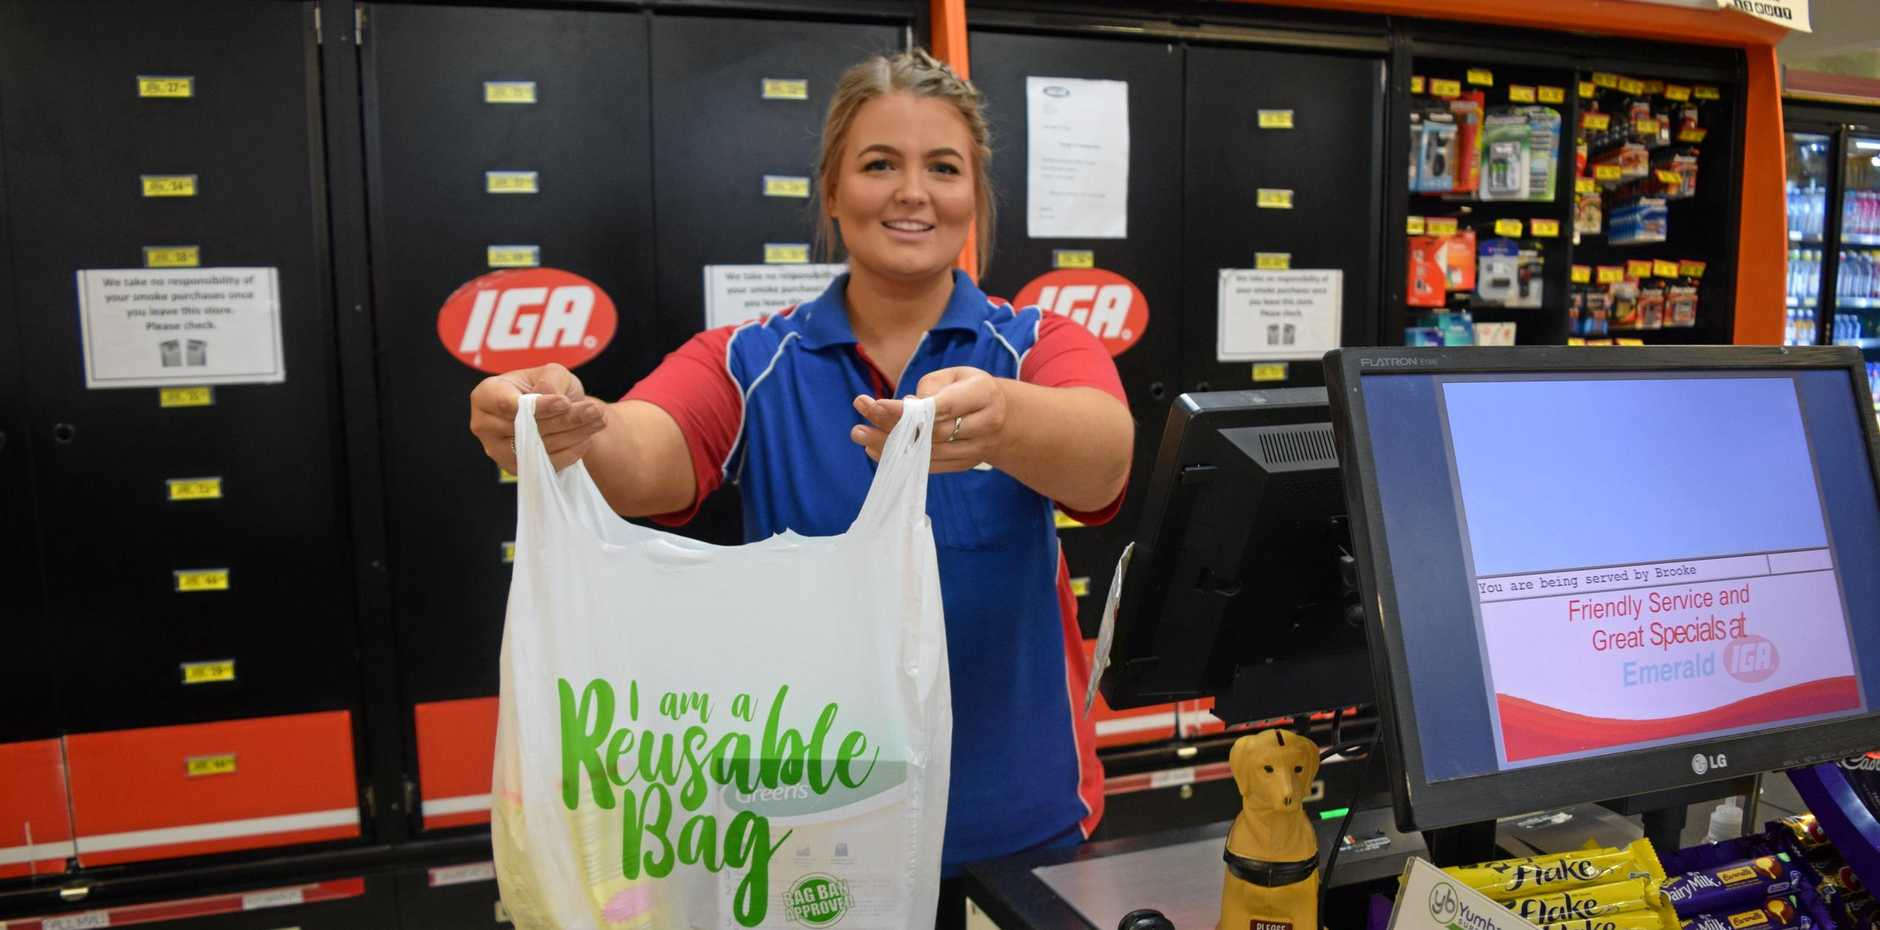 BAGGING PLASTIC: Emerald IGA employee Holly Wilson with their new 10 cent reusable bags.